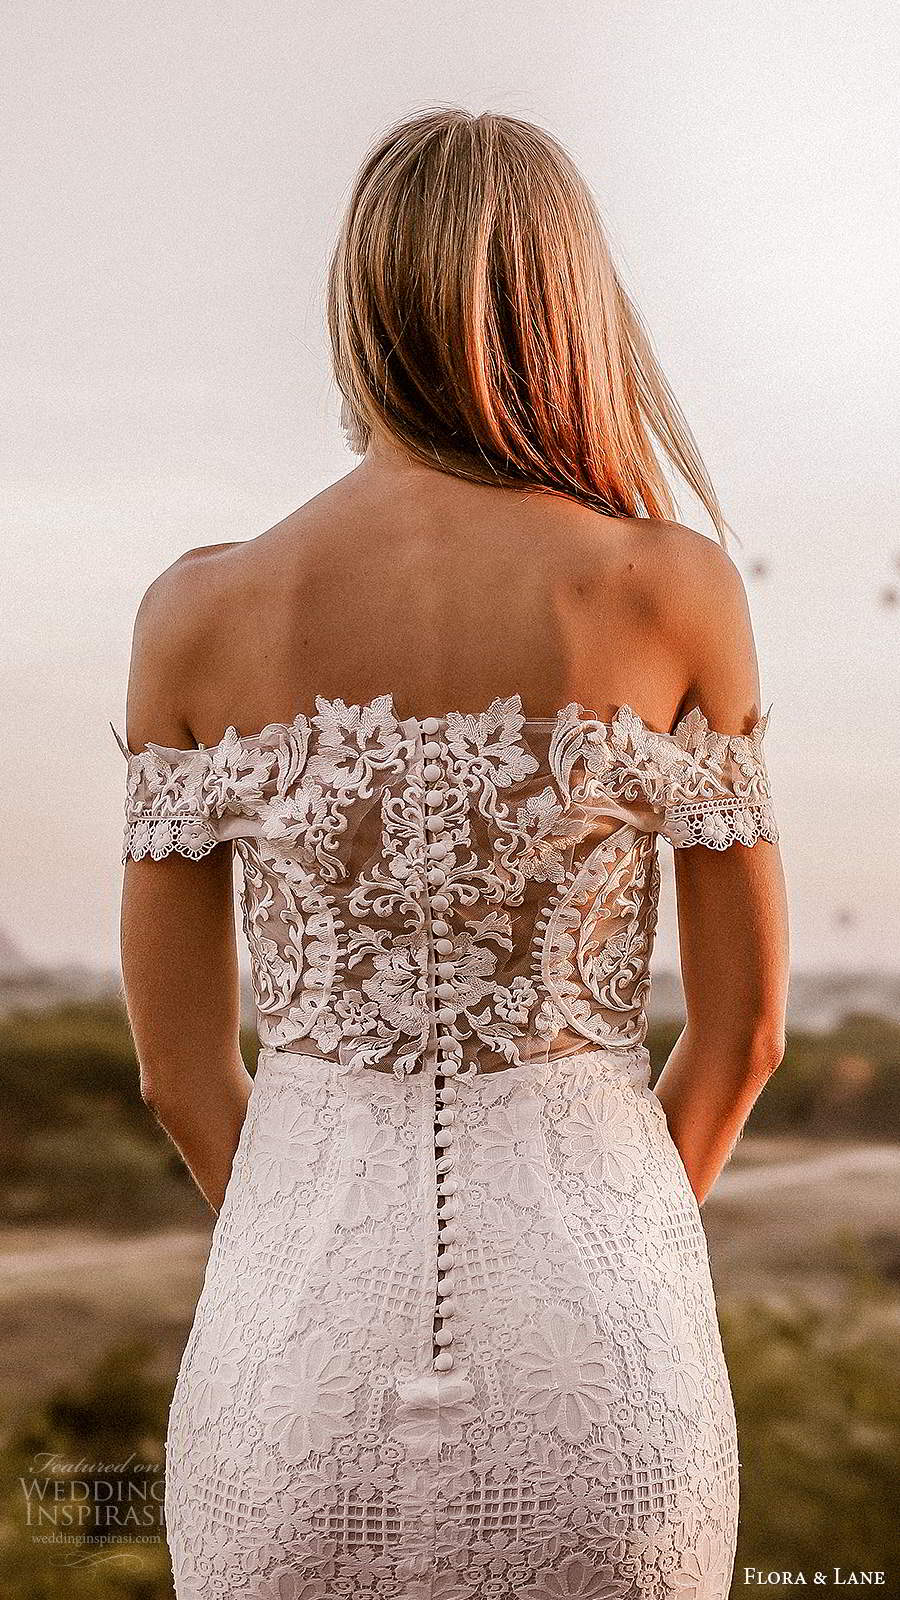 flora and lane 2019 bridal off shoulder short sleeves straight across neckline fully embellished lace sheath mermaid wedding dress sheer back chapel train (2) zbv